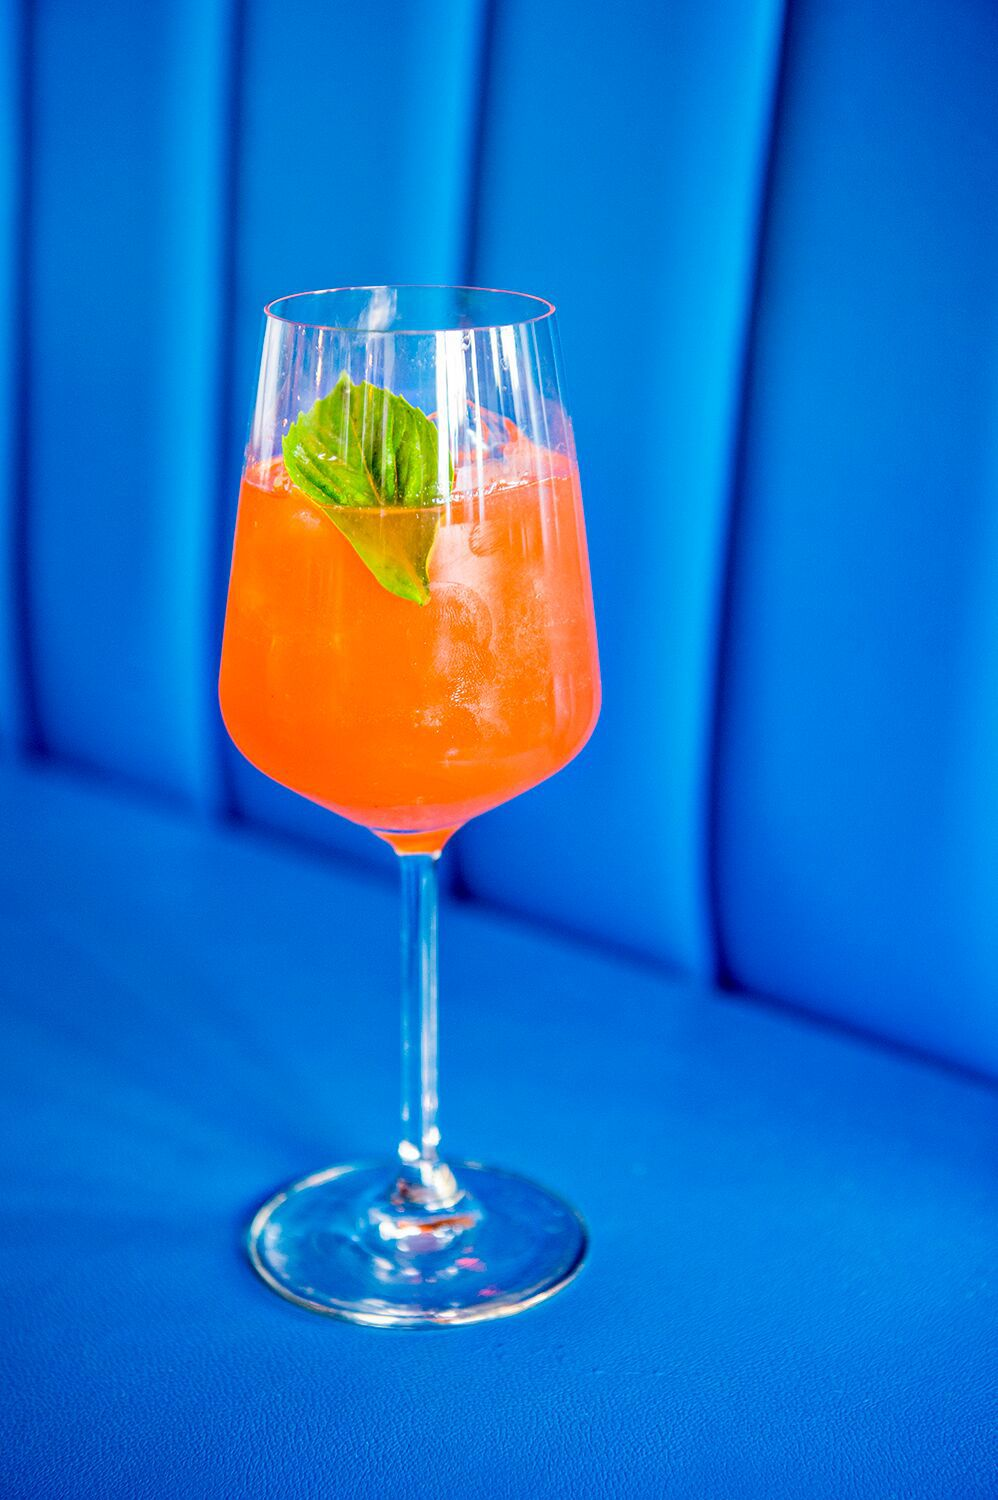 An orange cocktail in a wine glass